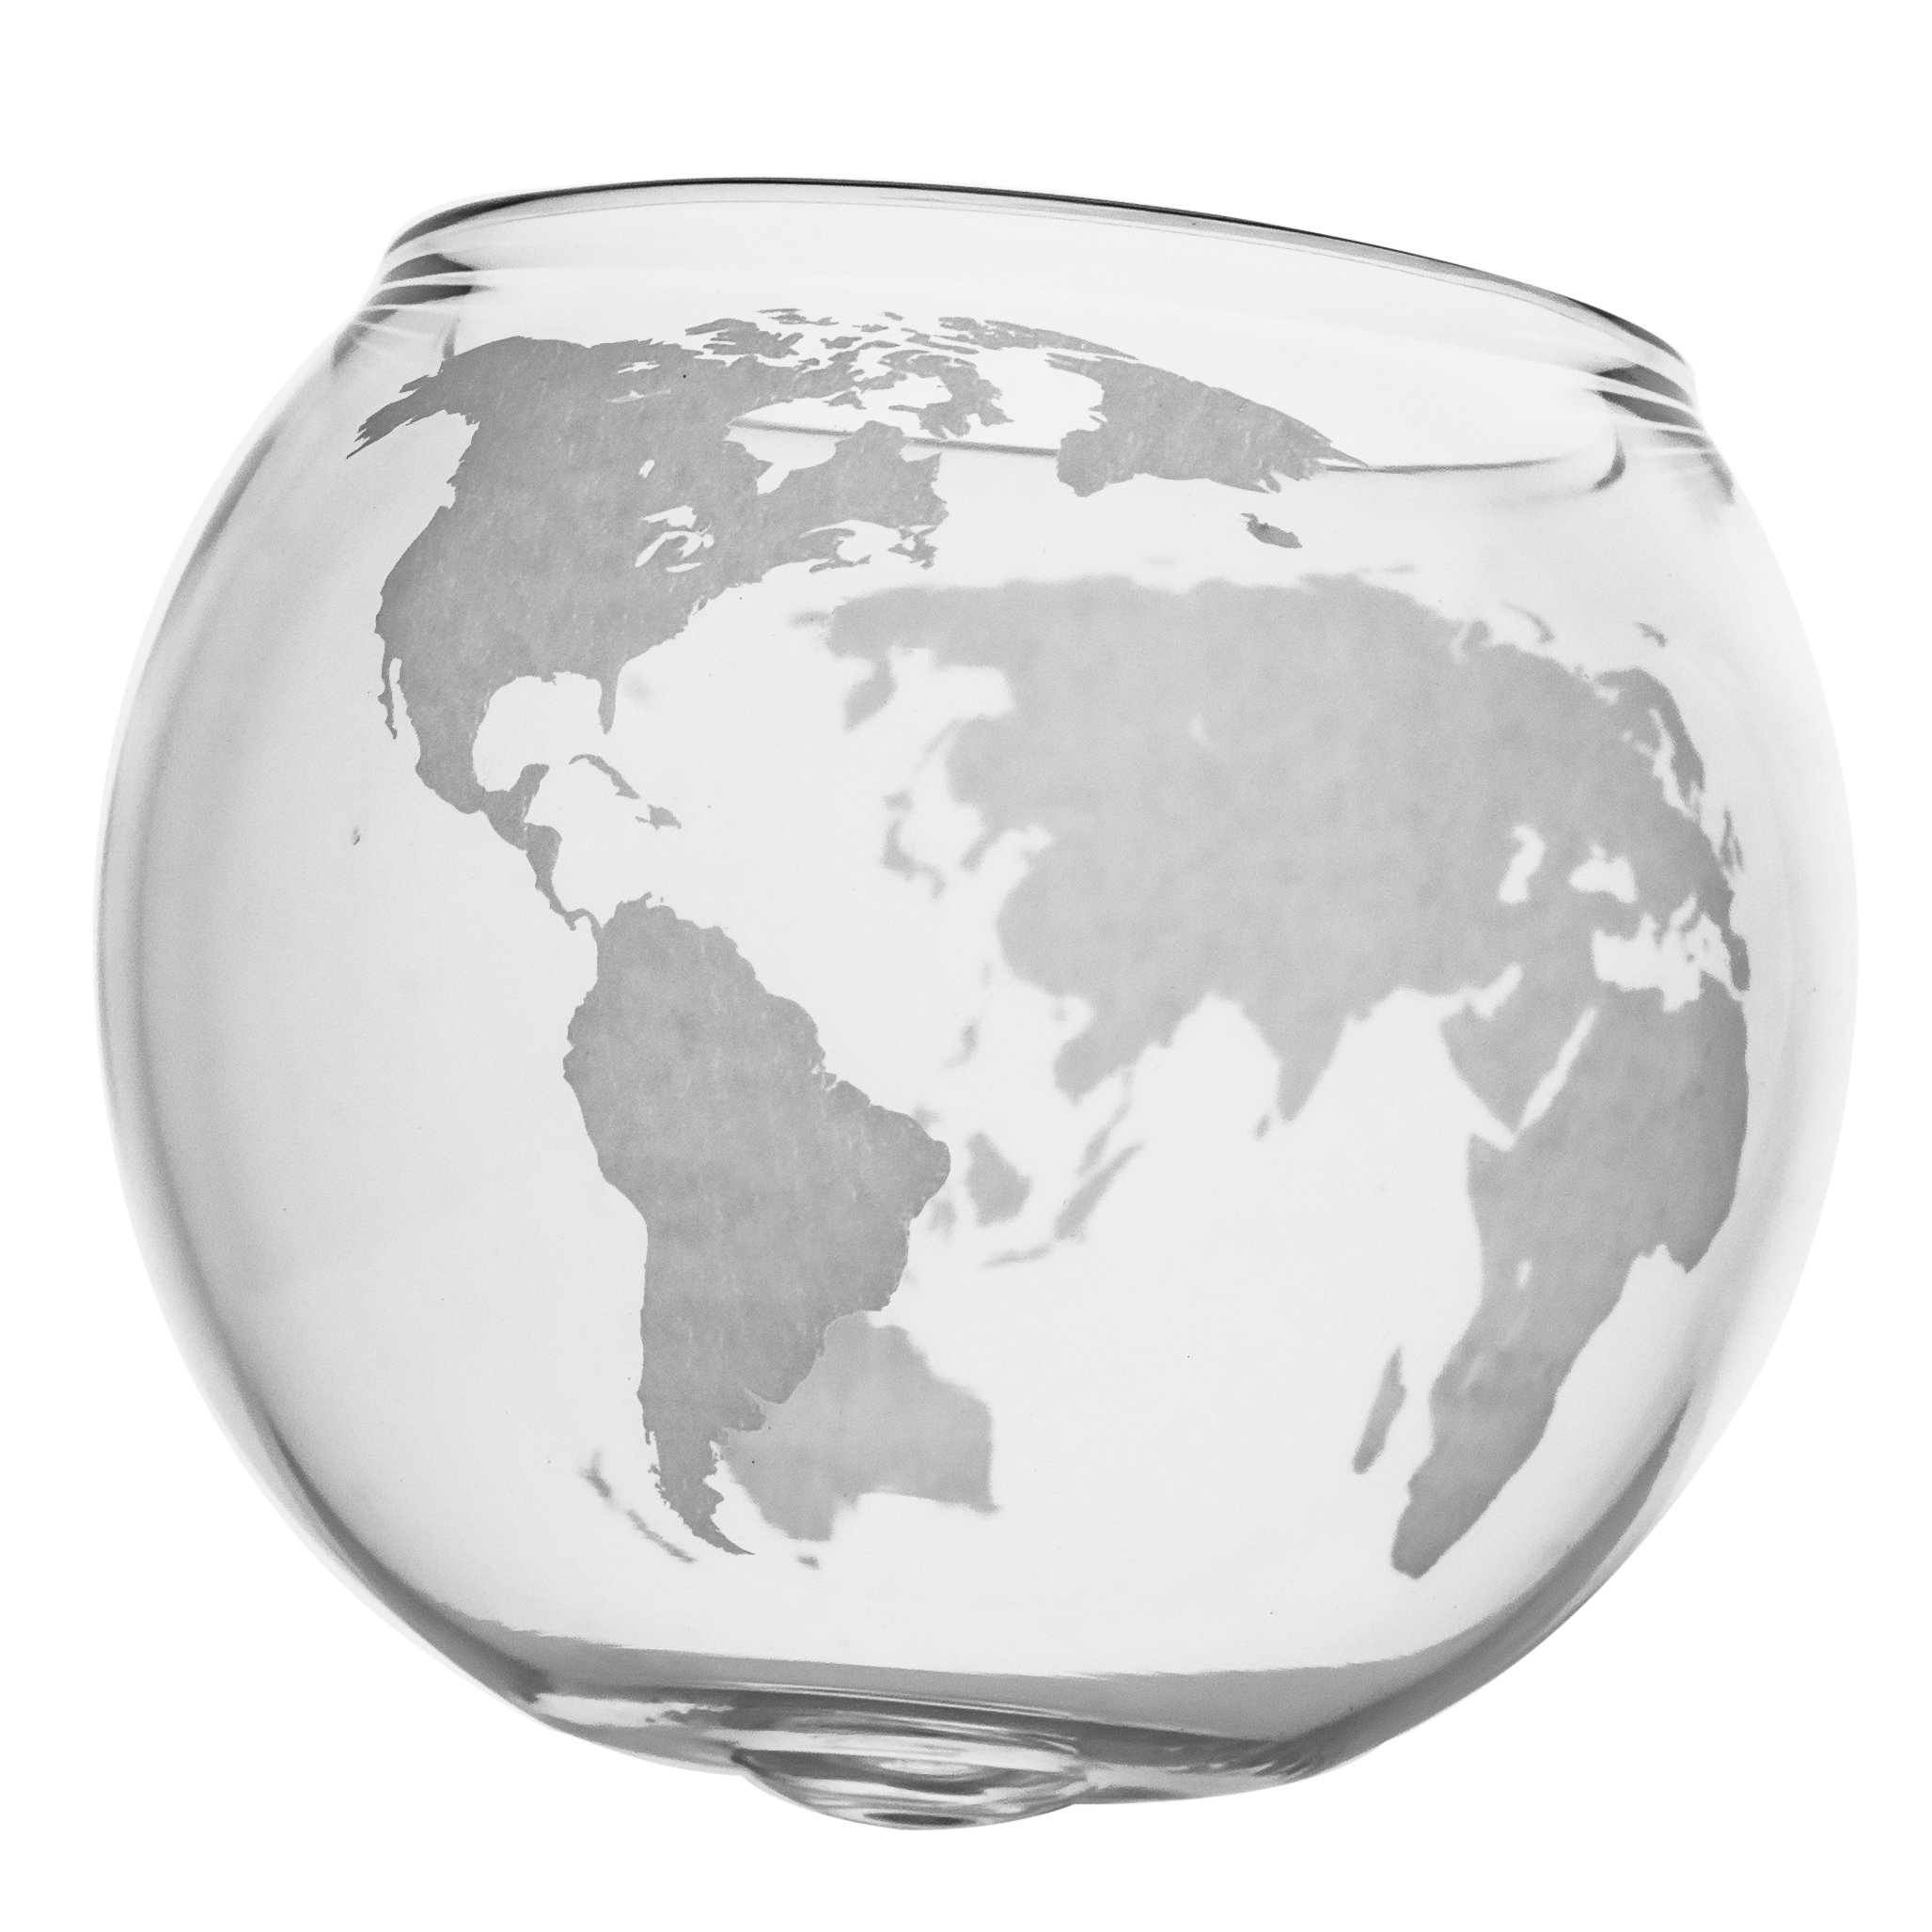 Etched Spinning/Rocking Globe Whiskey Glass - 10oz Glass for Scotch, Rum, Tequila or Bourbon – Old Fashioned/Rocks Glasses from Prestige Decanters (Set of Two)